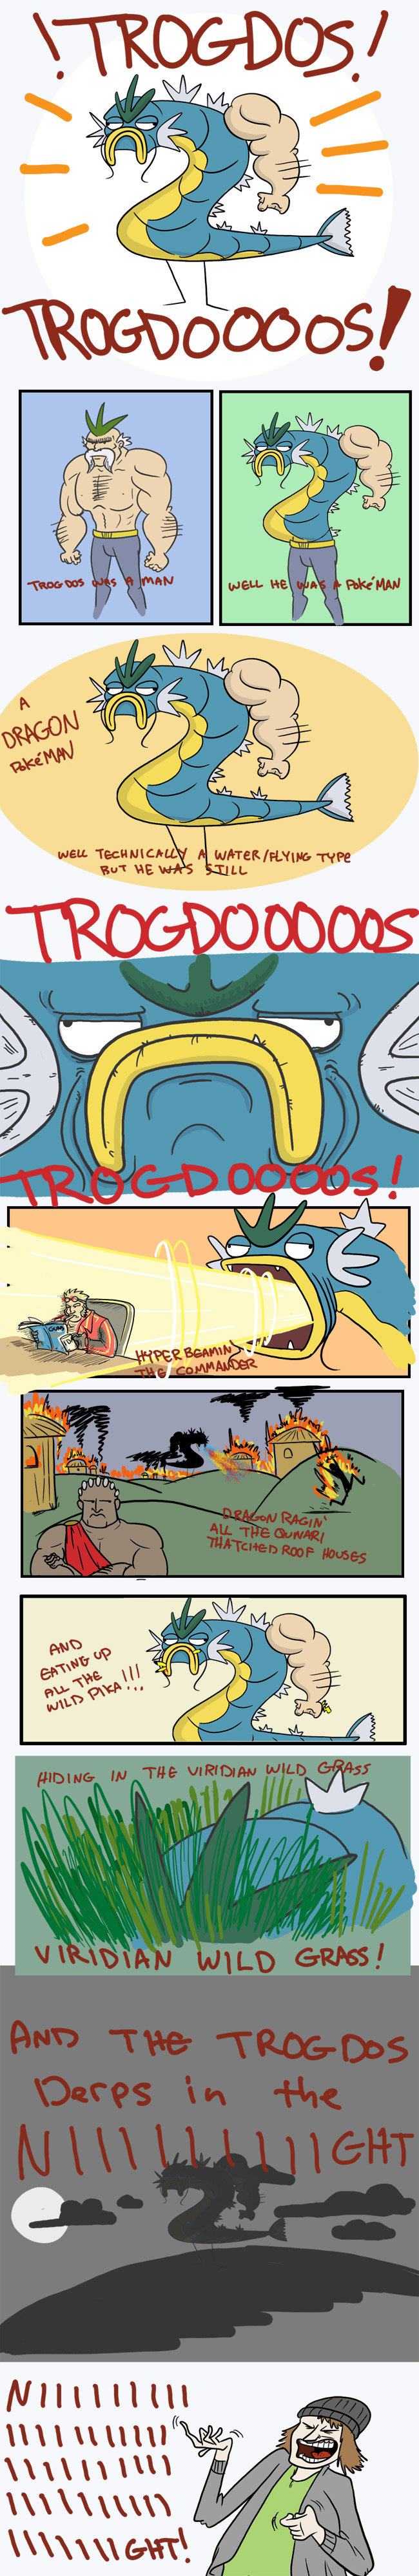 """Trogdoooooos. I am filled with lol at this. Art is by Nekoama <br /> and the image can be found here: <a href="""" target=_blank>thepunchlineismac"""